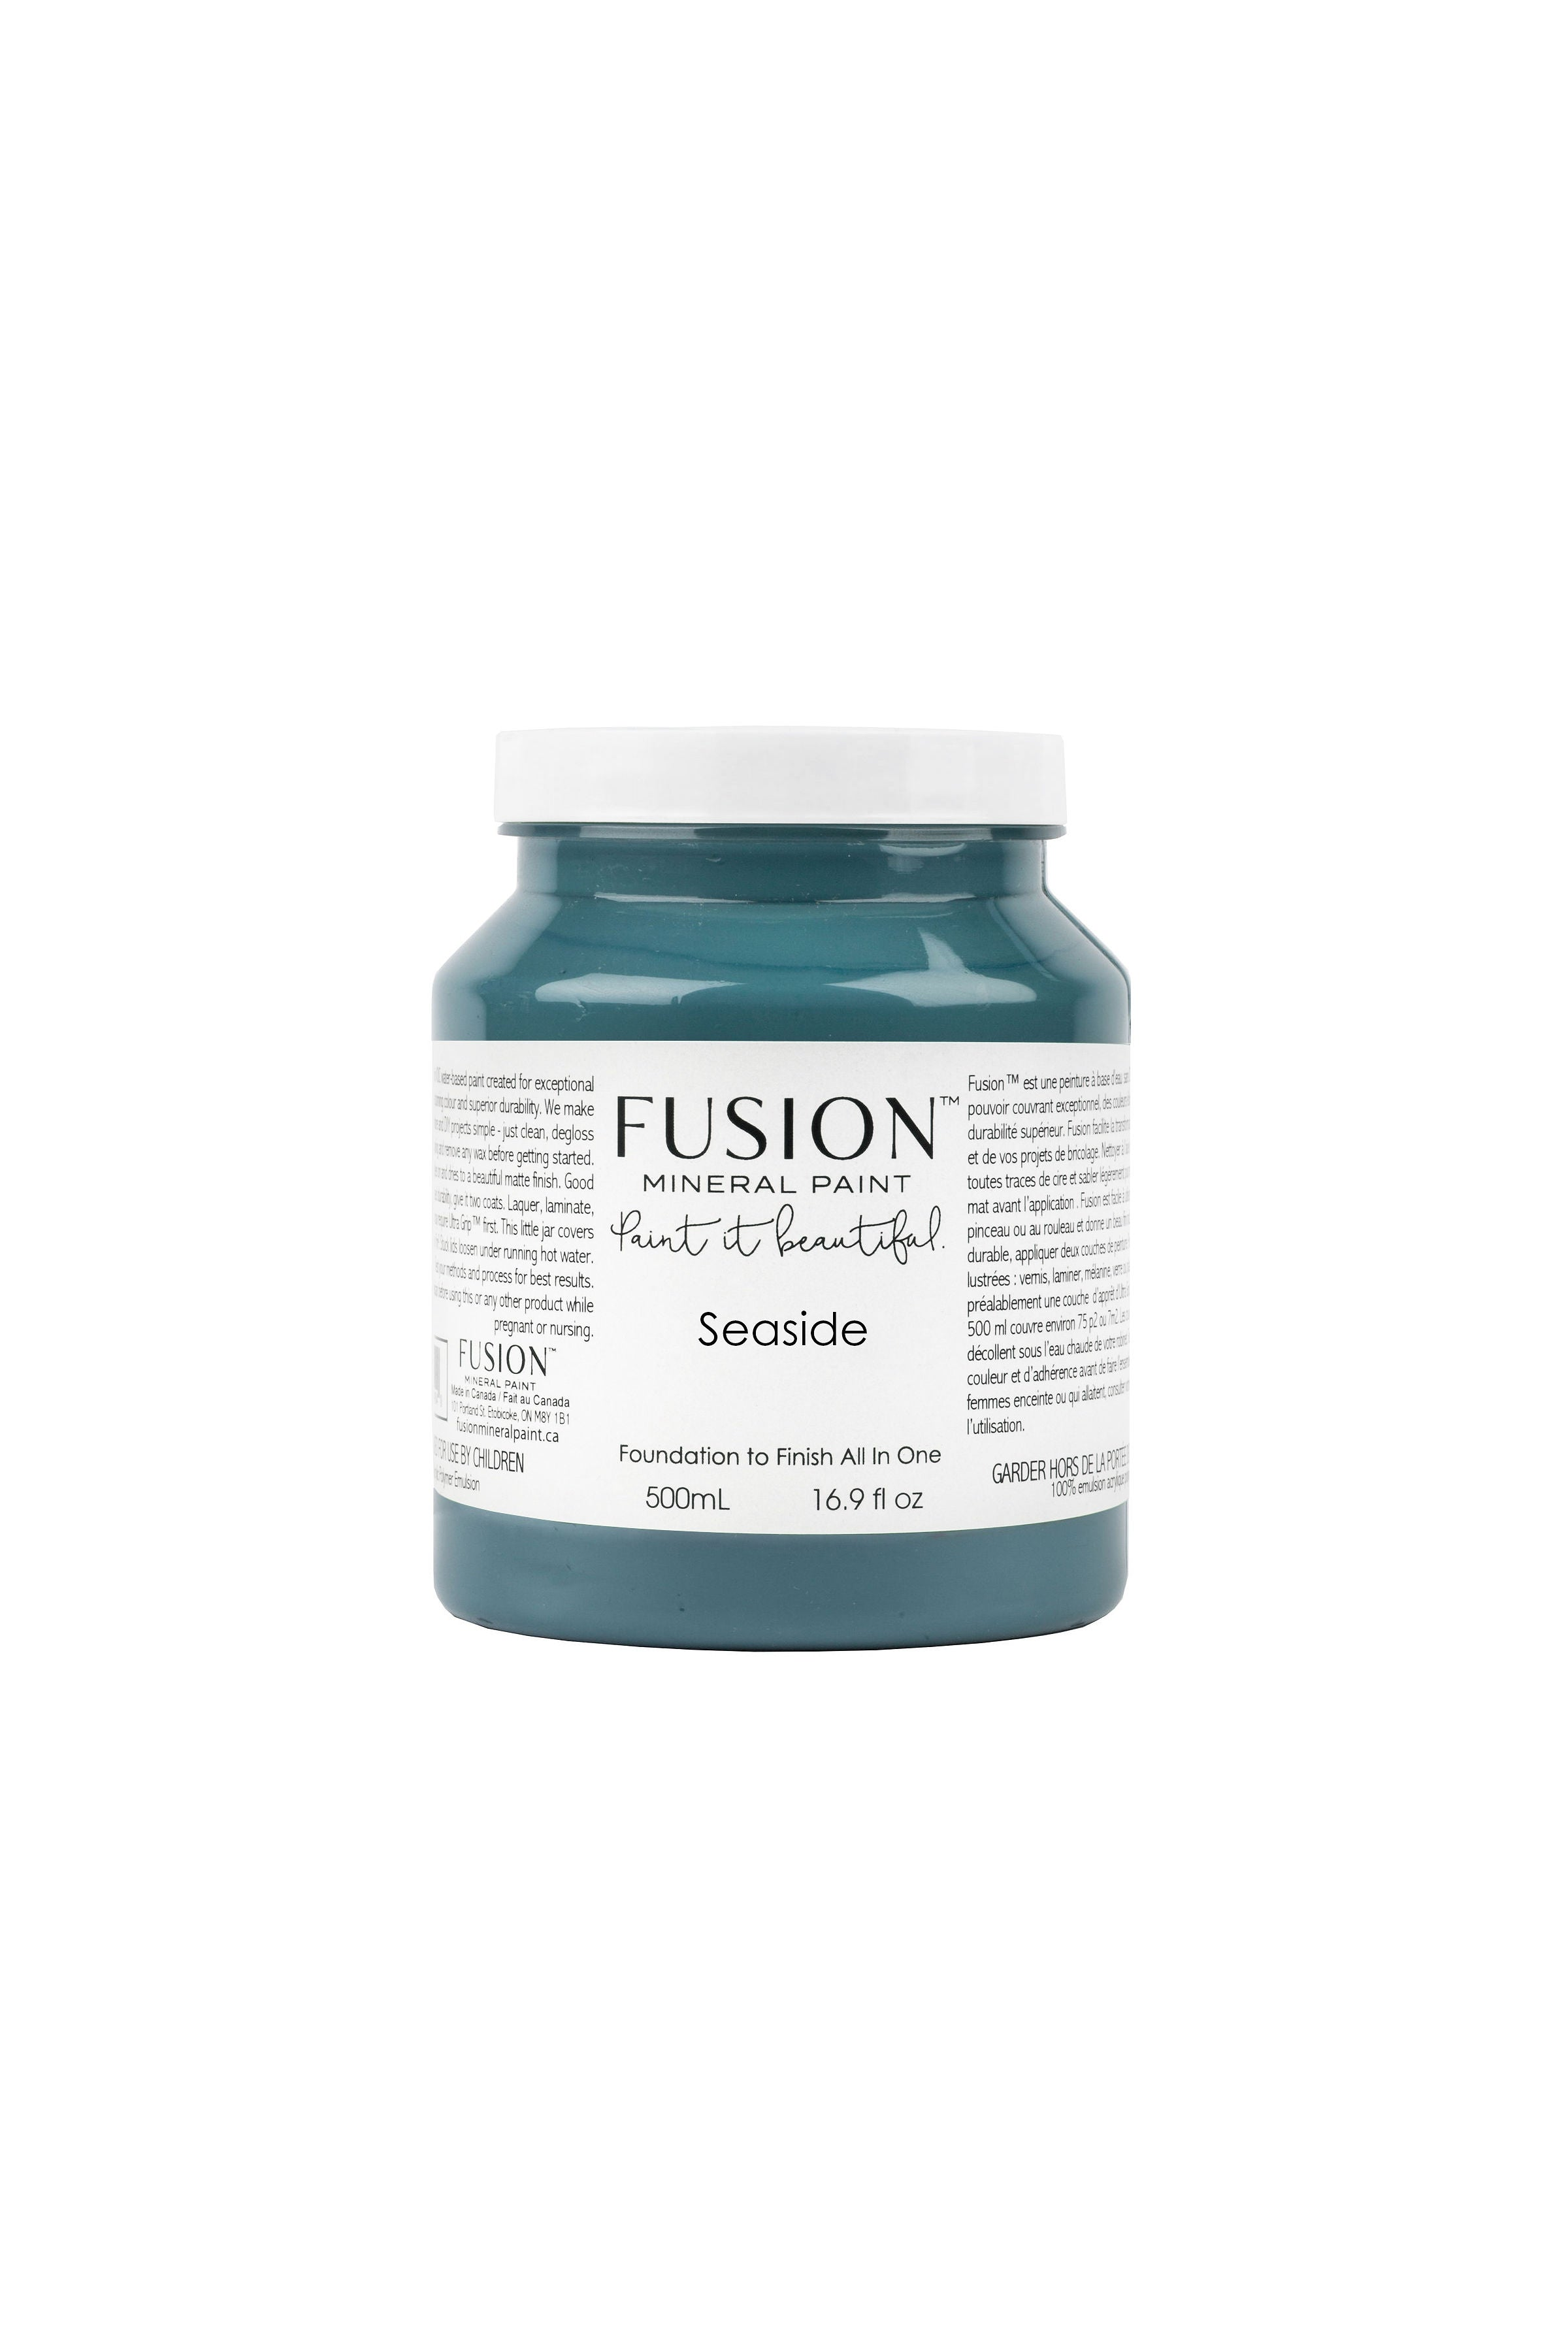 Seaside - Fusion Mineral Paint - 500ml Pint *RETIRED*